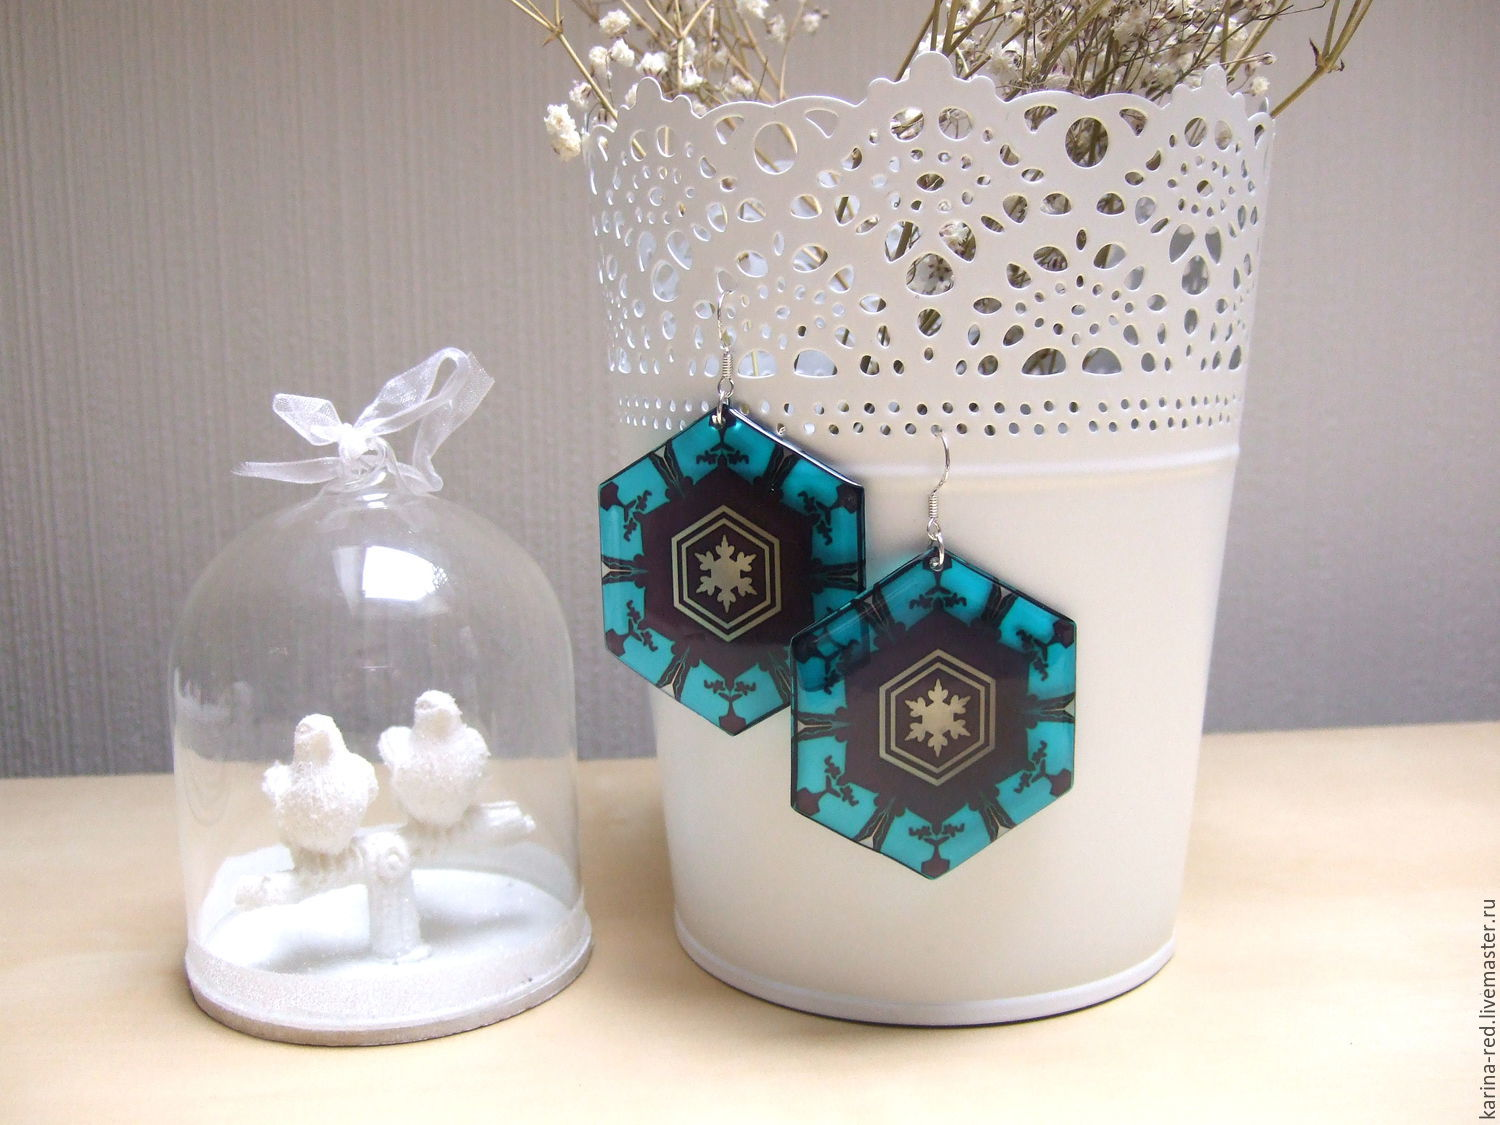 buy bright original winter snow earrings for maiden of jewelry transparent epoxy blue with black snowflake pattern geometry jewelry handmade for new year holiday